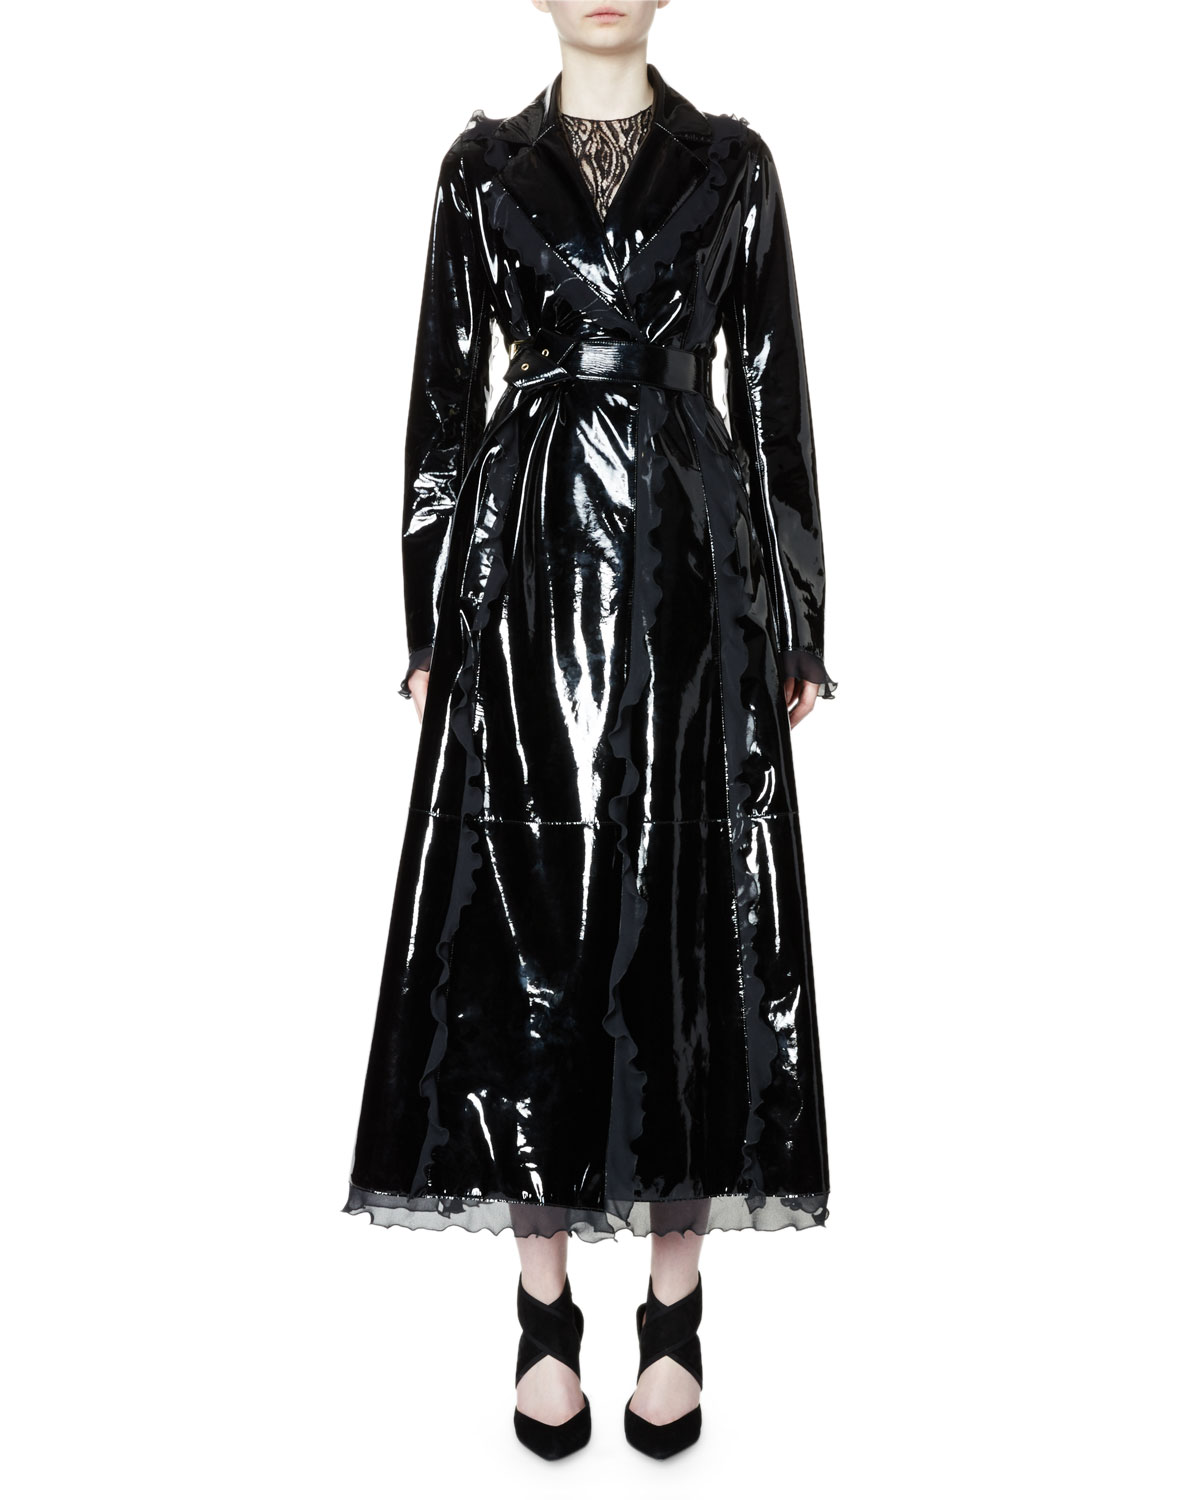 adddab10b0f8 Lanvin Belted Patent-Leather Trench Coat W Ruffle Trim